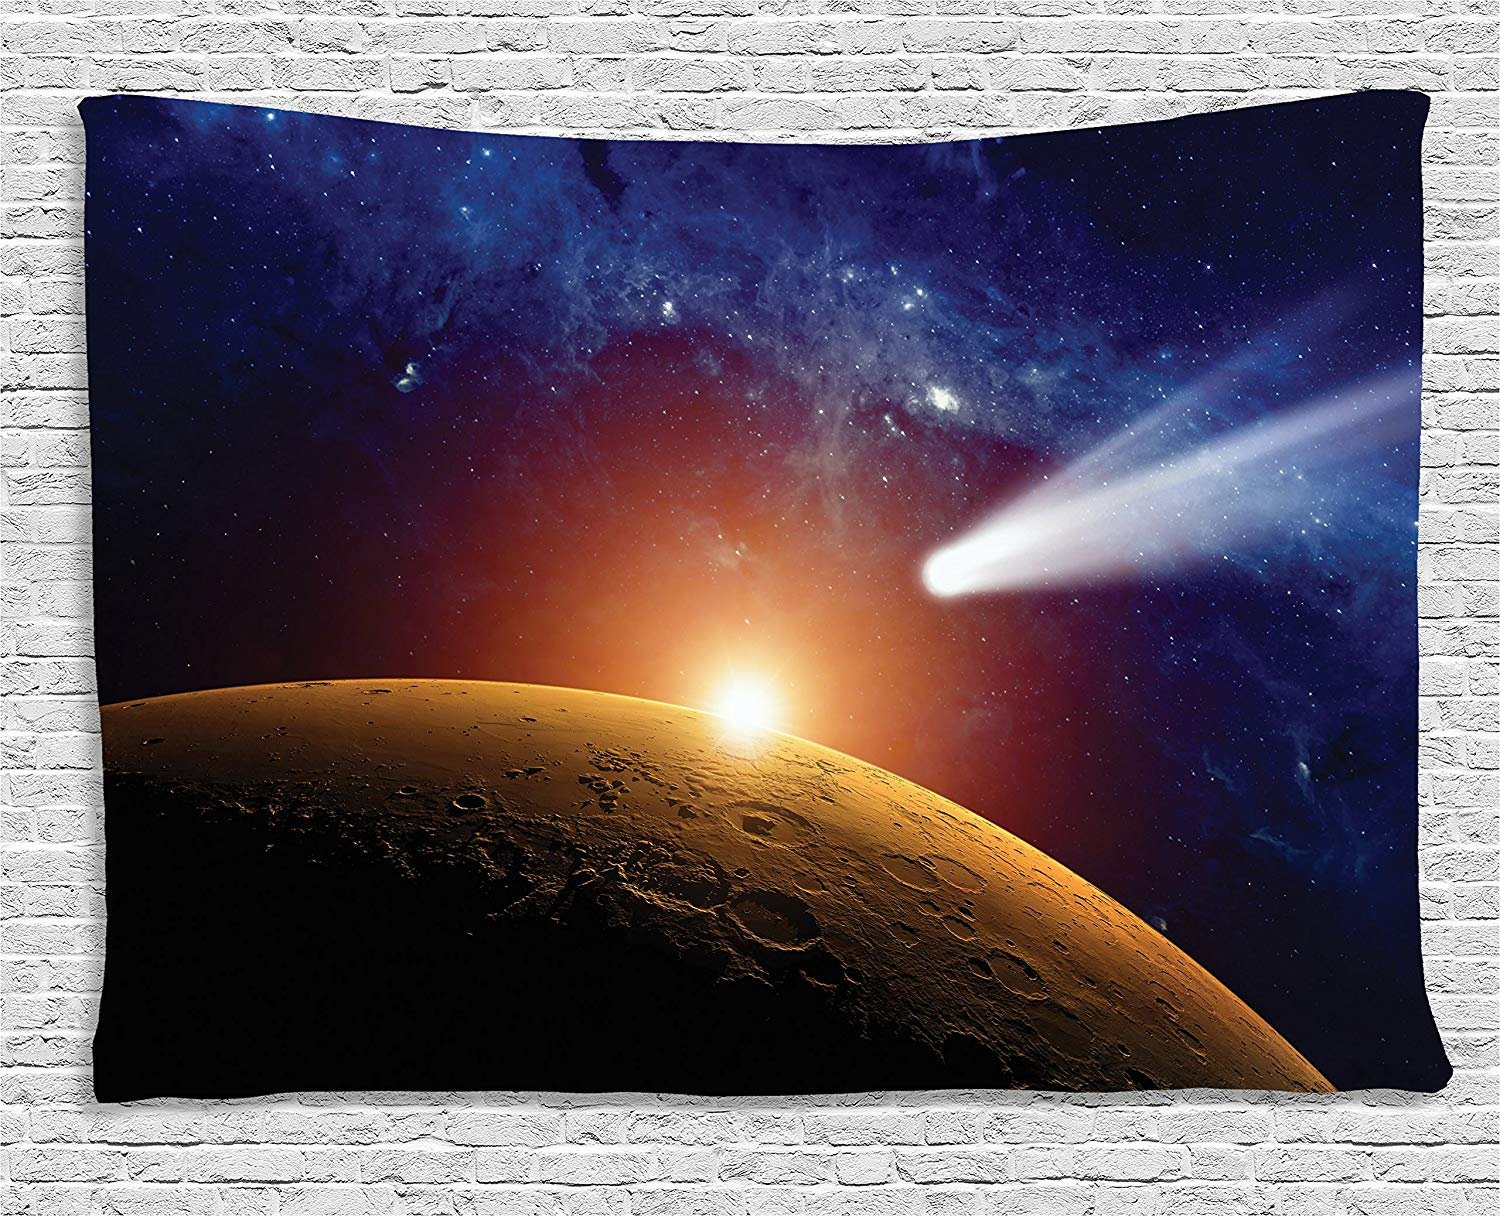 XHFITCLtd Outer Space Decor Tapestry, Comet Tail Approaching Planet Mars Fantastic Star Cosmos Dark Solar System Scenery, Wall Hanging for Bedroom Living Room Dorm, 60 W X 40 L, Blue and Orange